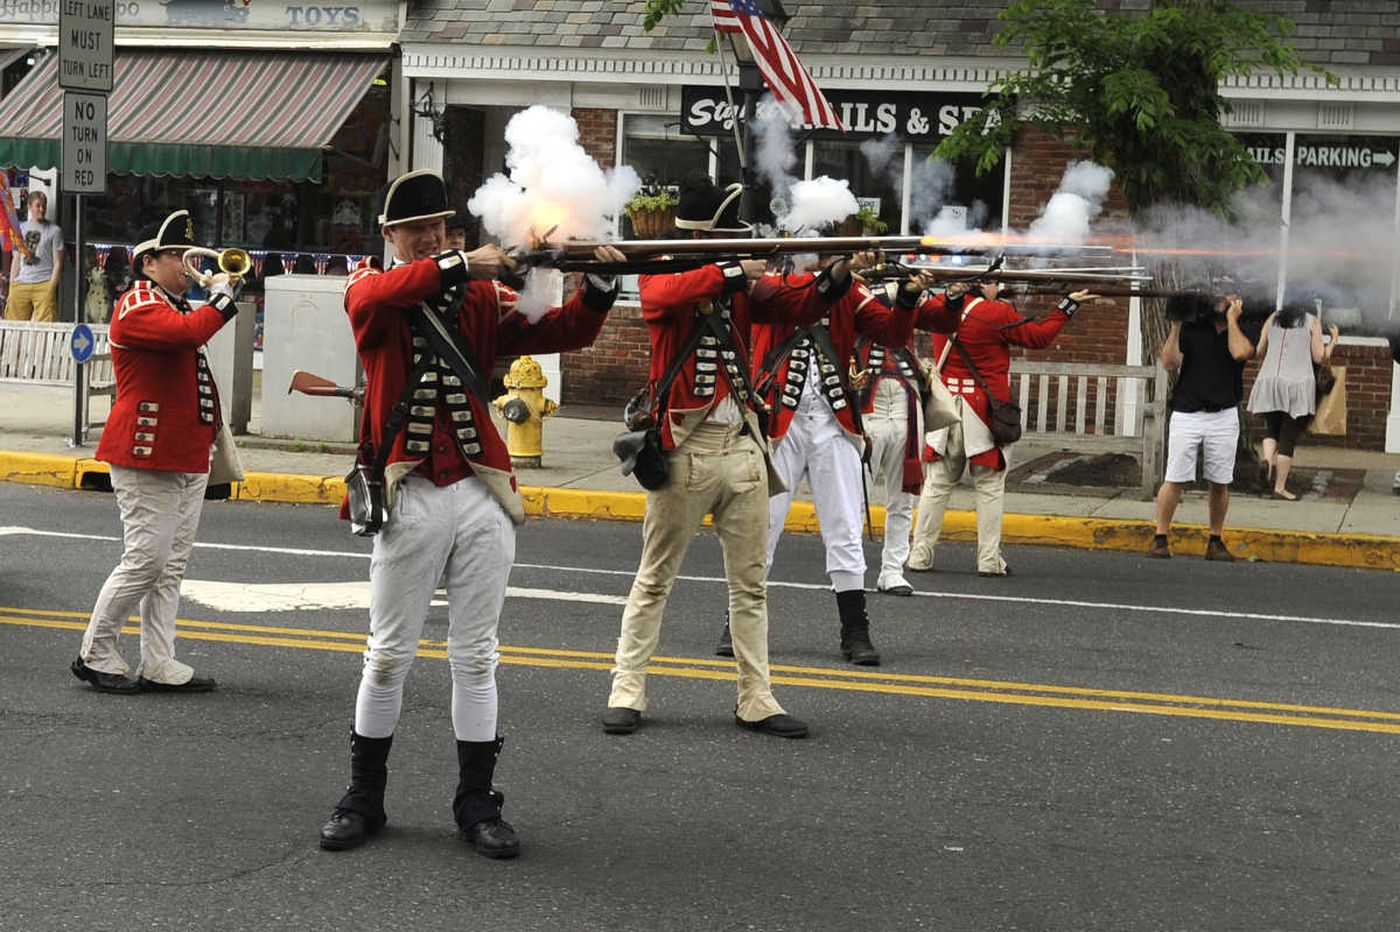 A Haddonfield battle, found-art fashion, and 12 other things to do around Philadelphia, June 2 to 4